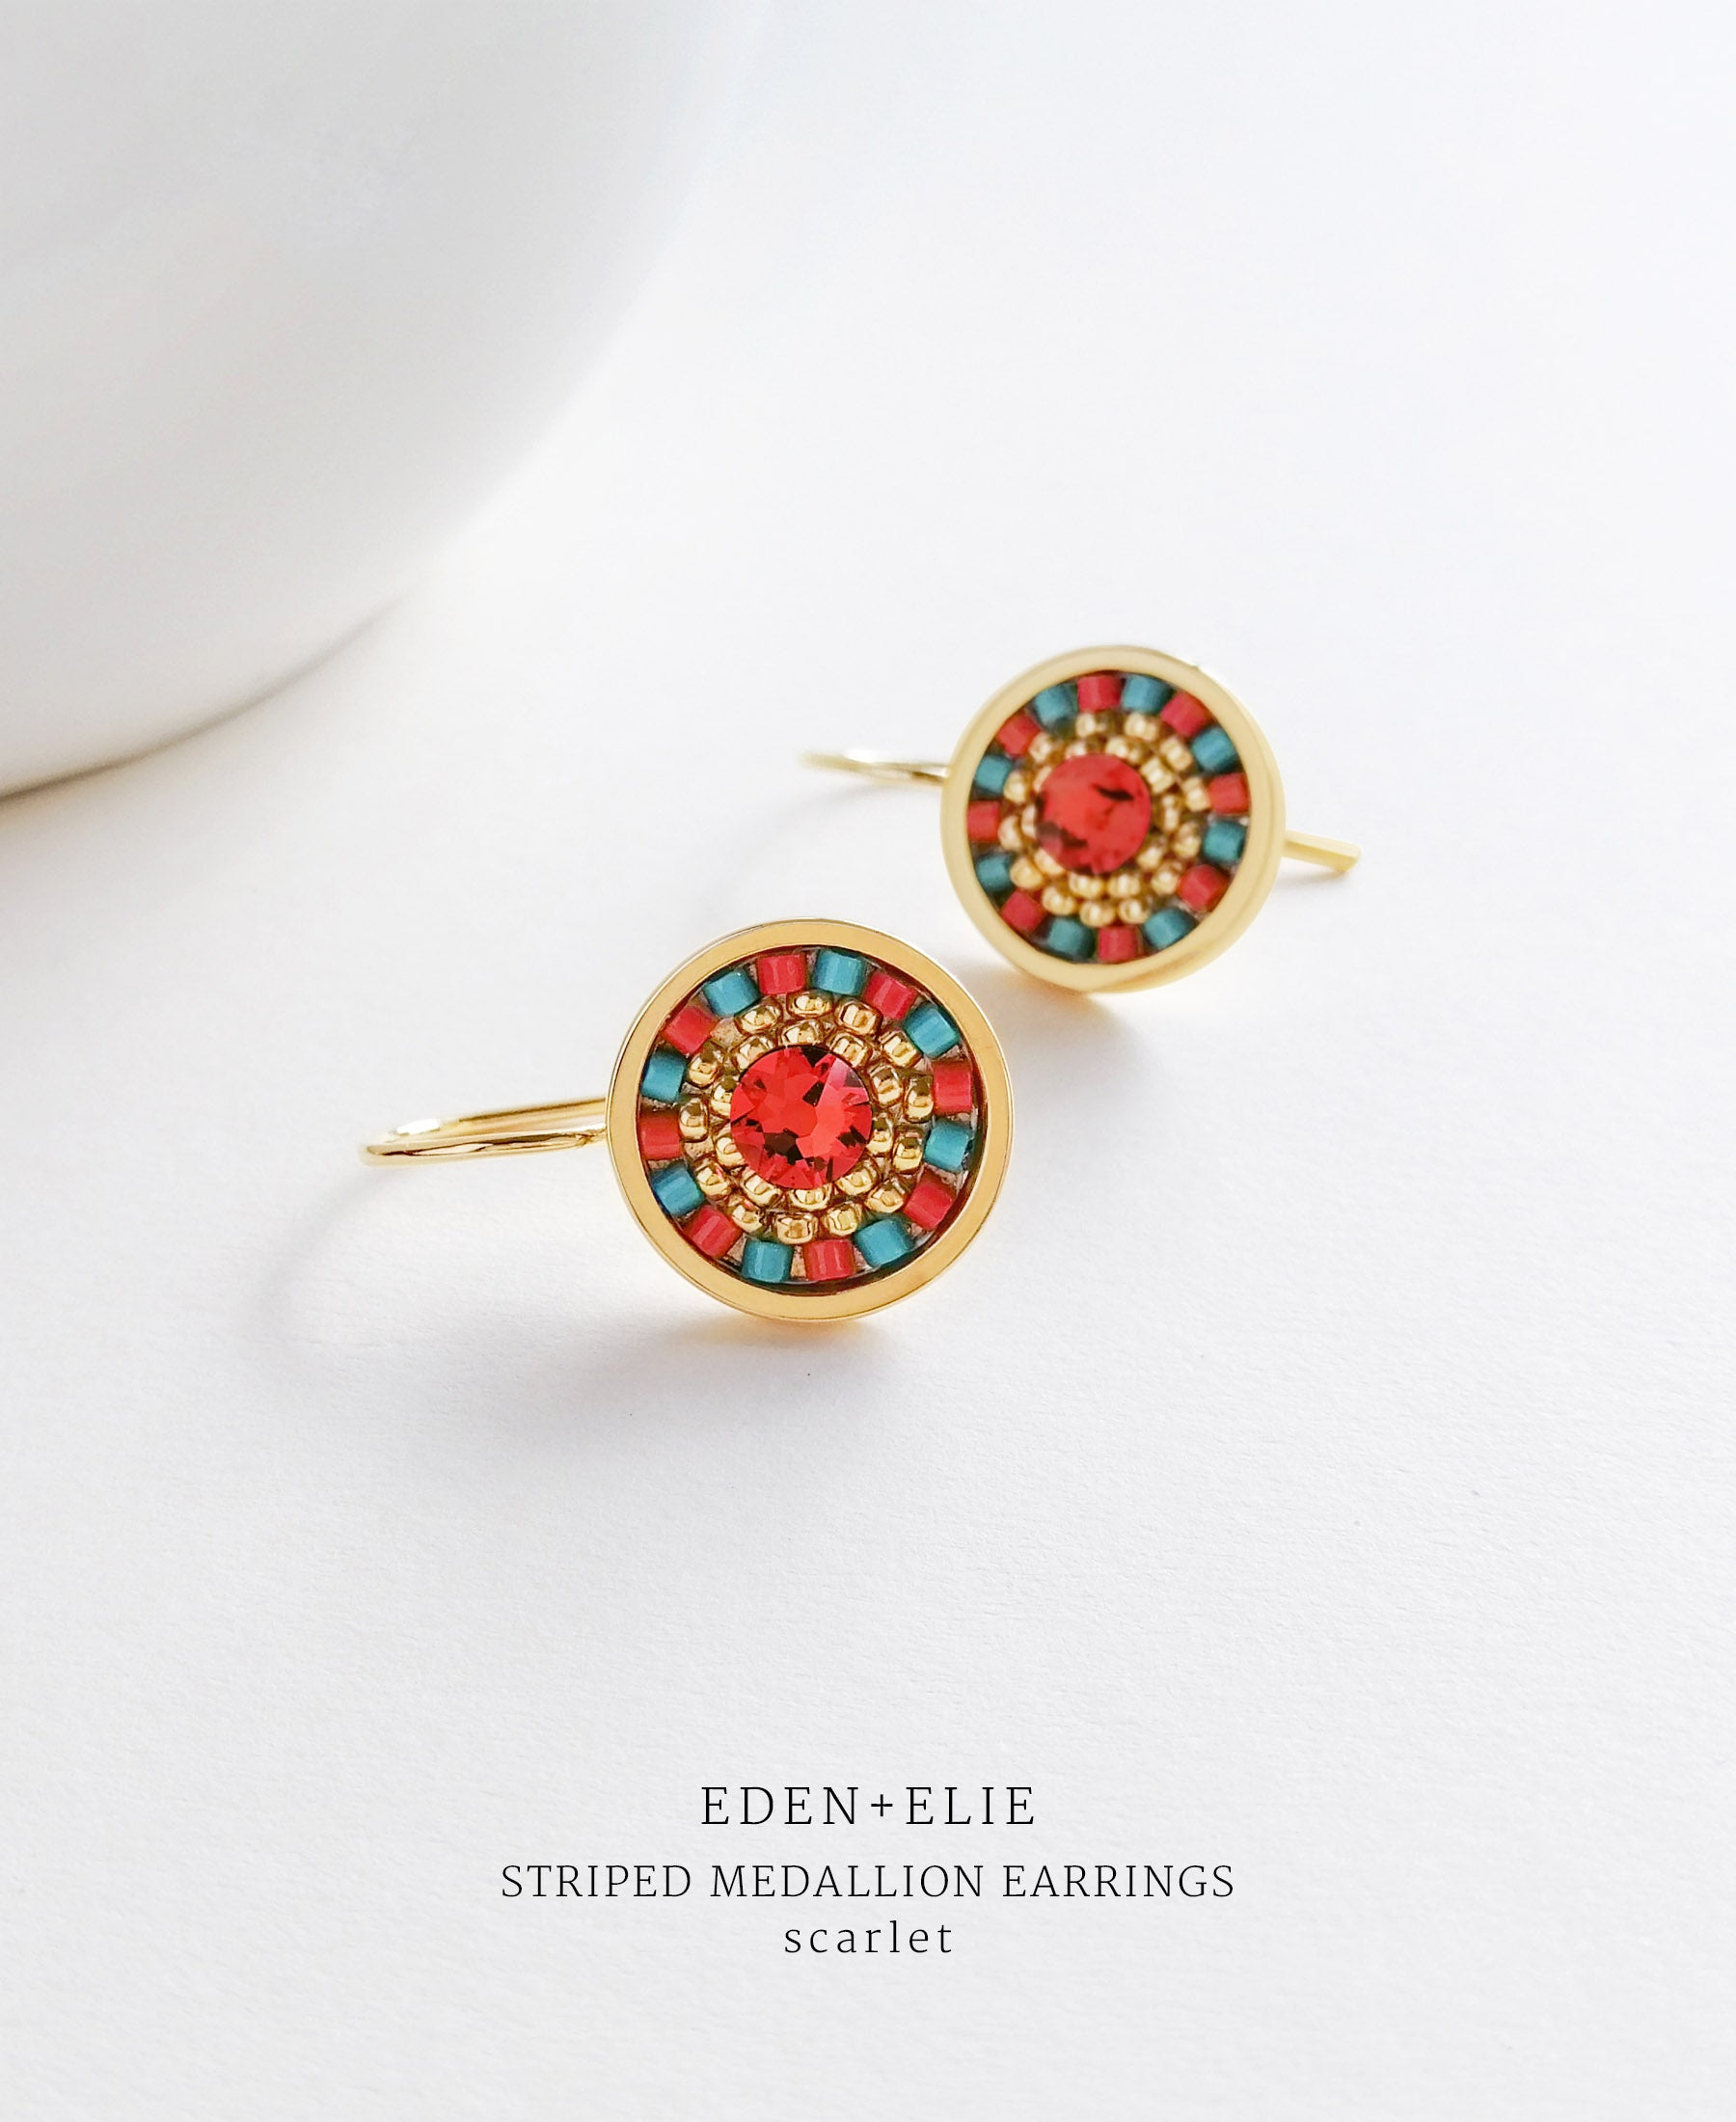 EDEN + ELIE Striped Medallion drop earrings - scarlet